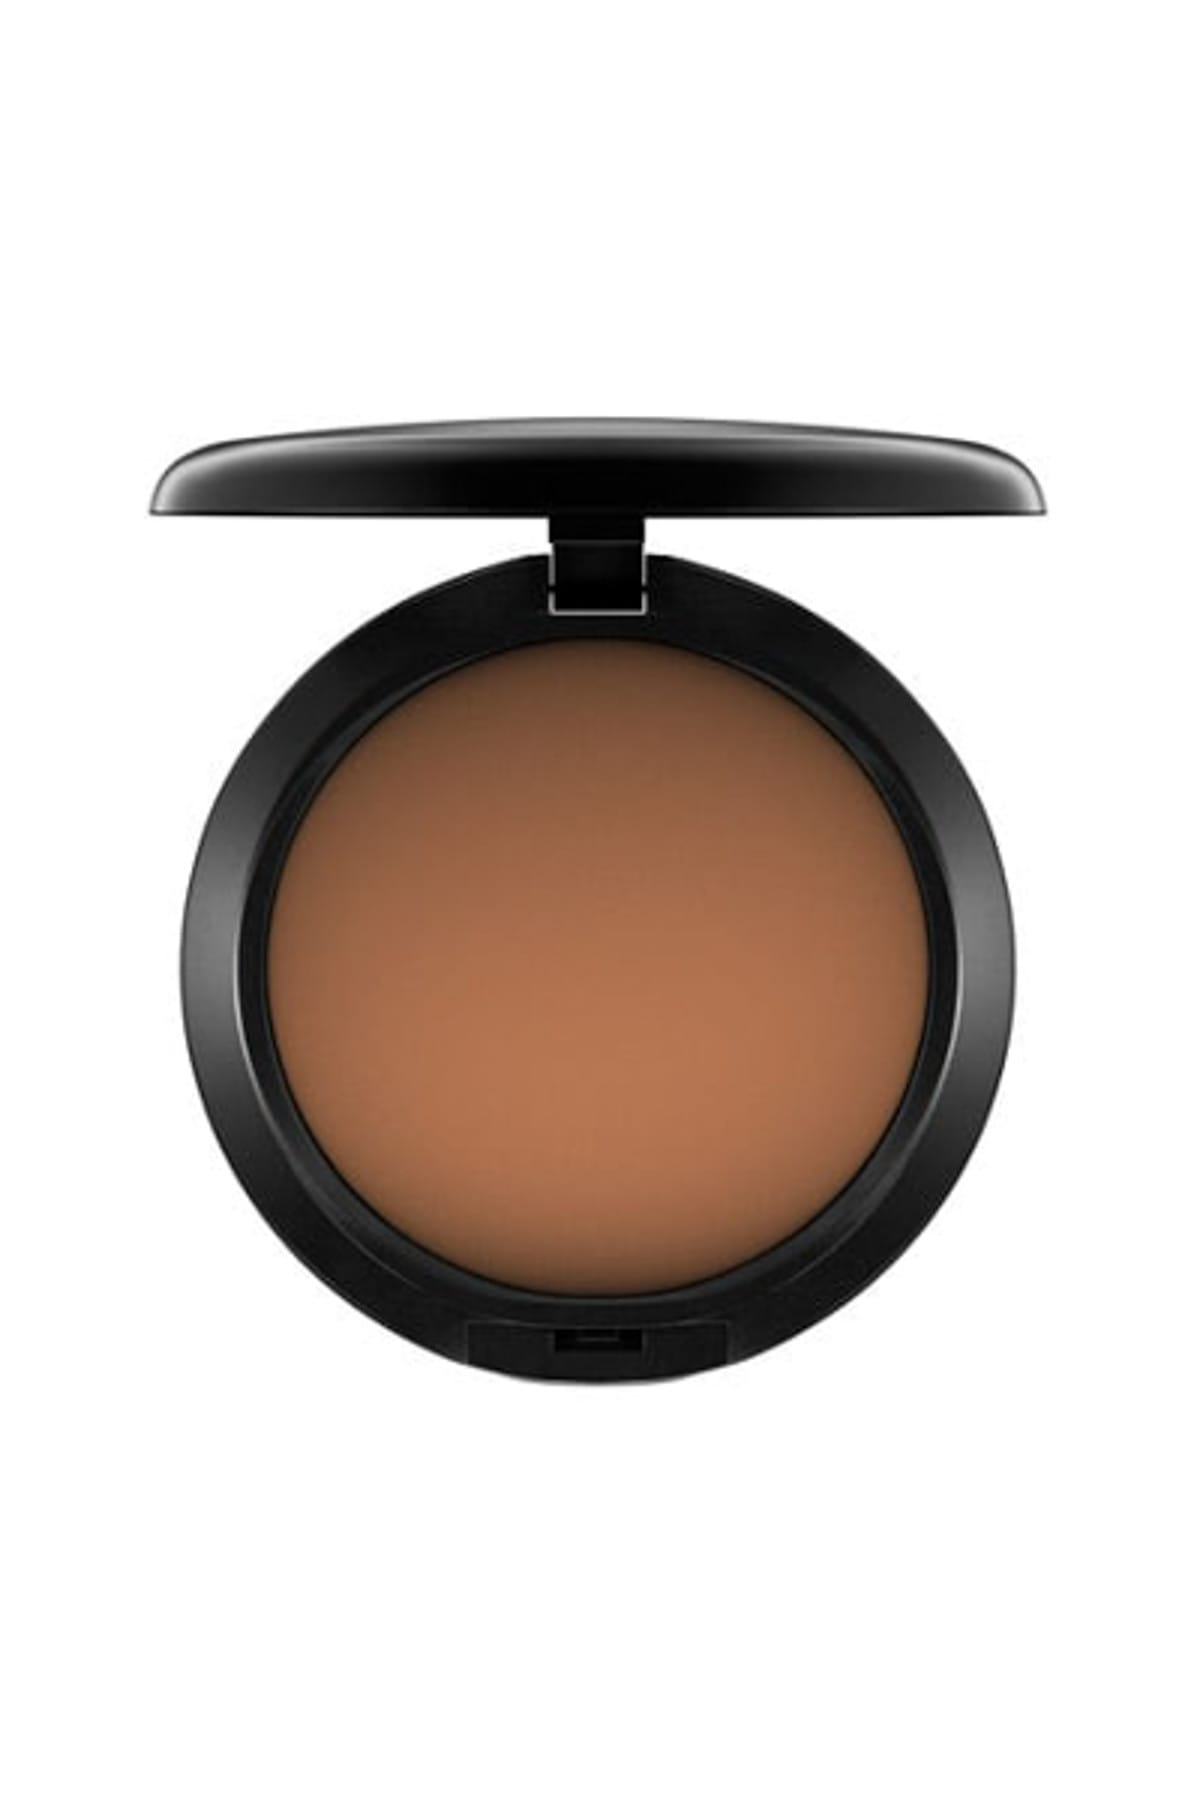 M.A.C Pudra Fondöten - Studio Fix Powder Plus Foundation NW58 15 g 773602264551 1